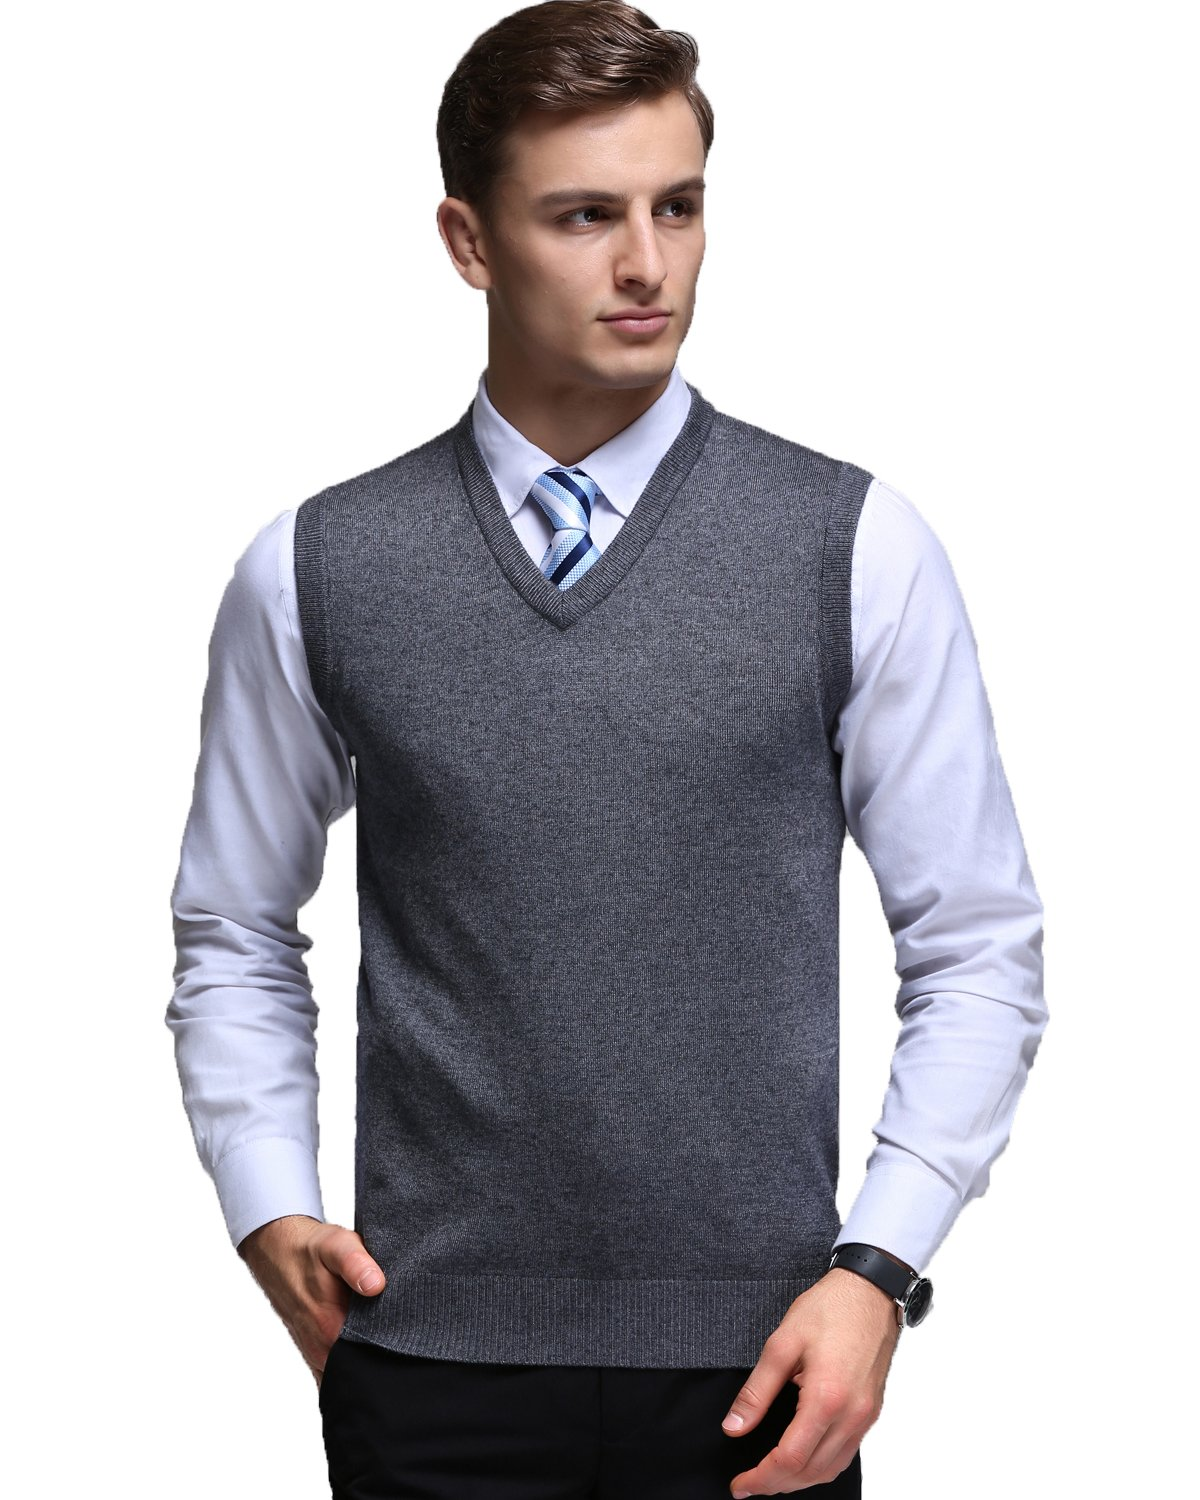 Kinlonsair Mens Casual Slim Fit Solid Lightweight V-Neck Sweater Vest,Dark Grey,X-Large(US)